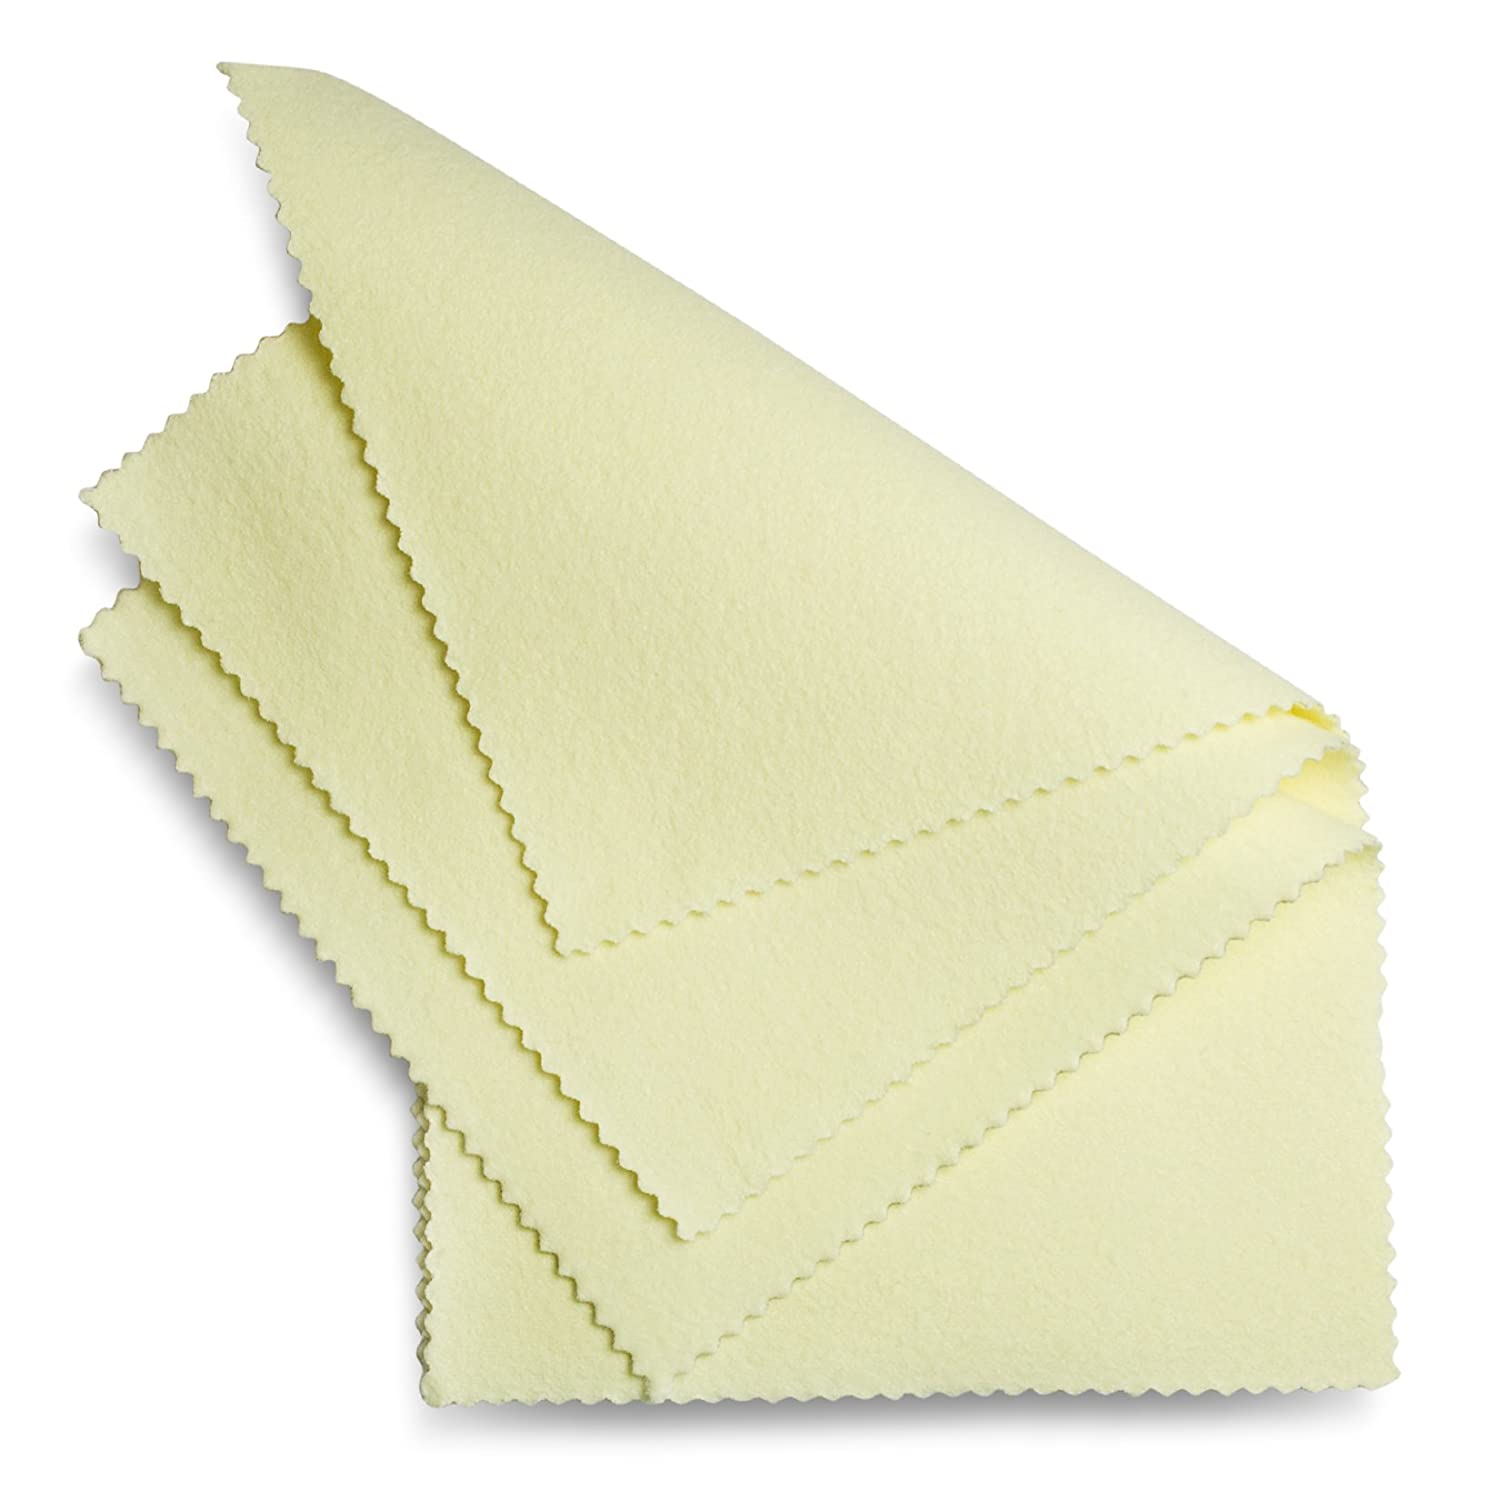 Jewelry Polishing Cloths for Silver, Gold, Brass, Copper - Package of 3 Sunshine AP10775PX